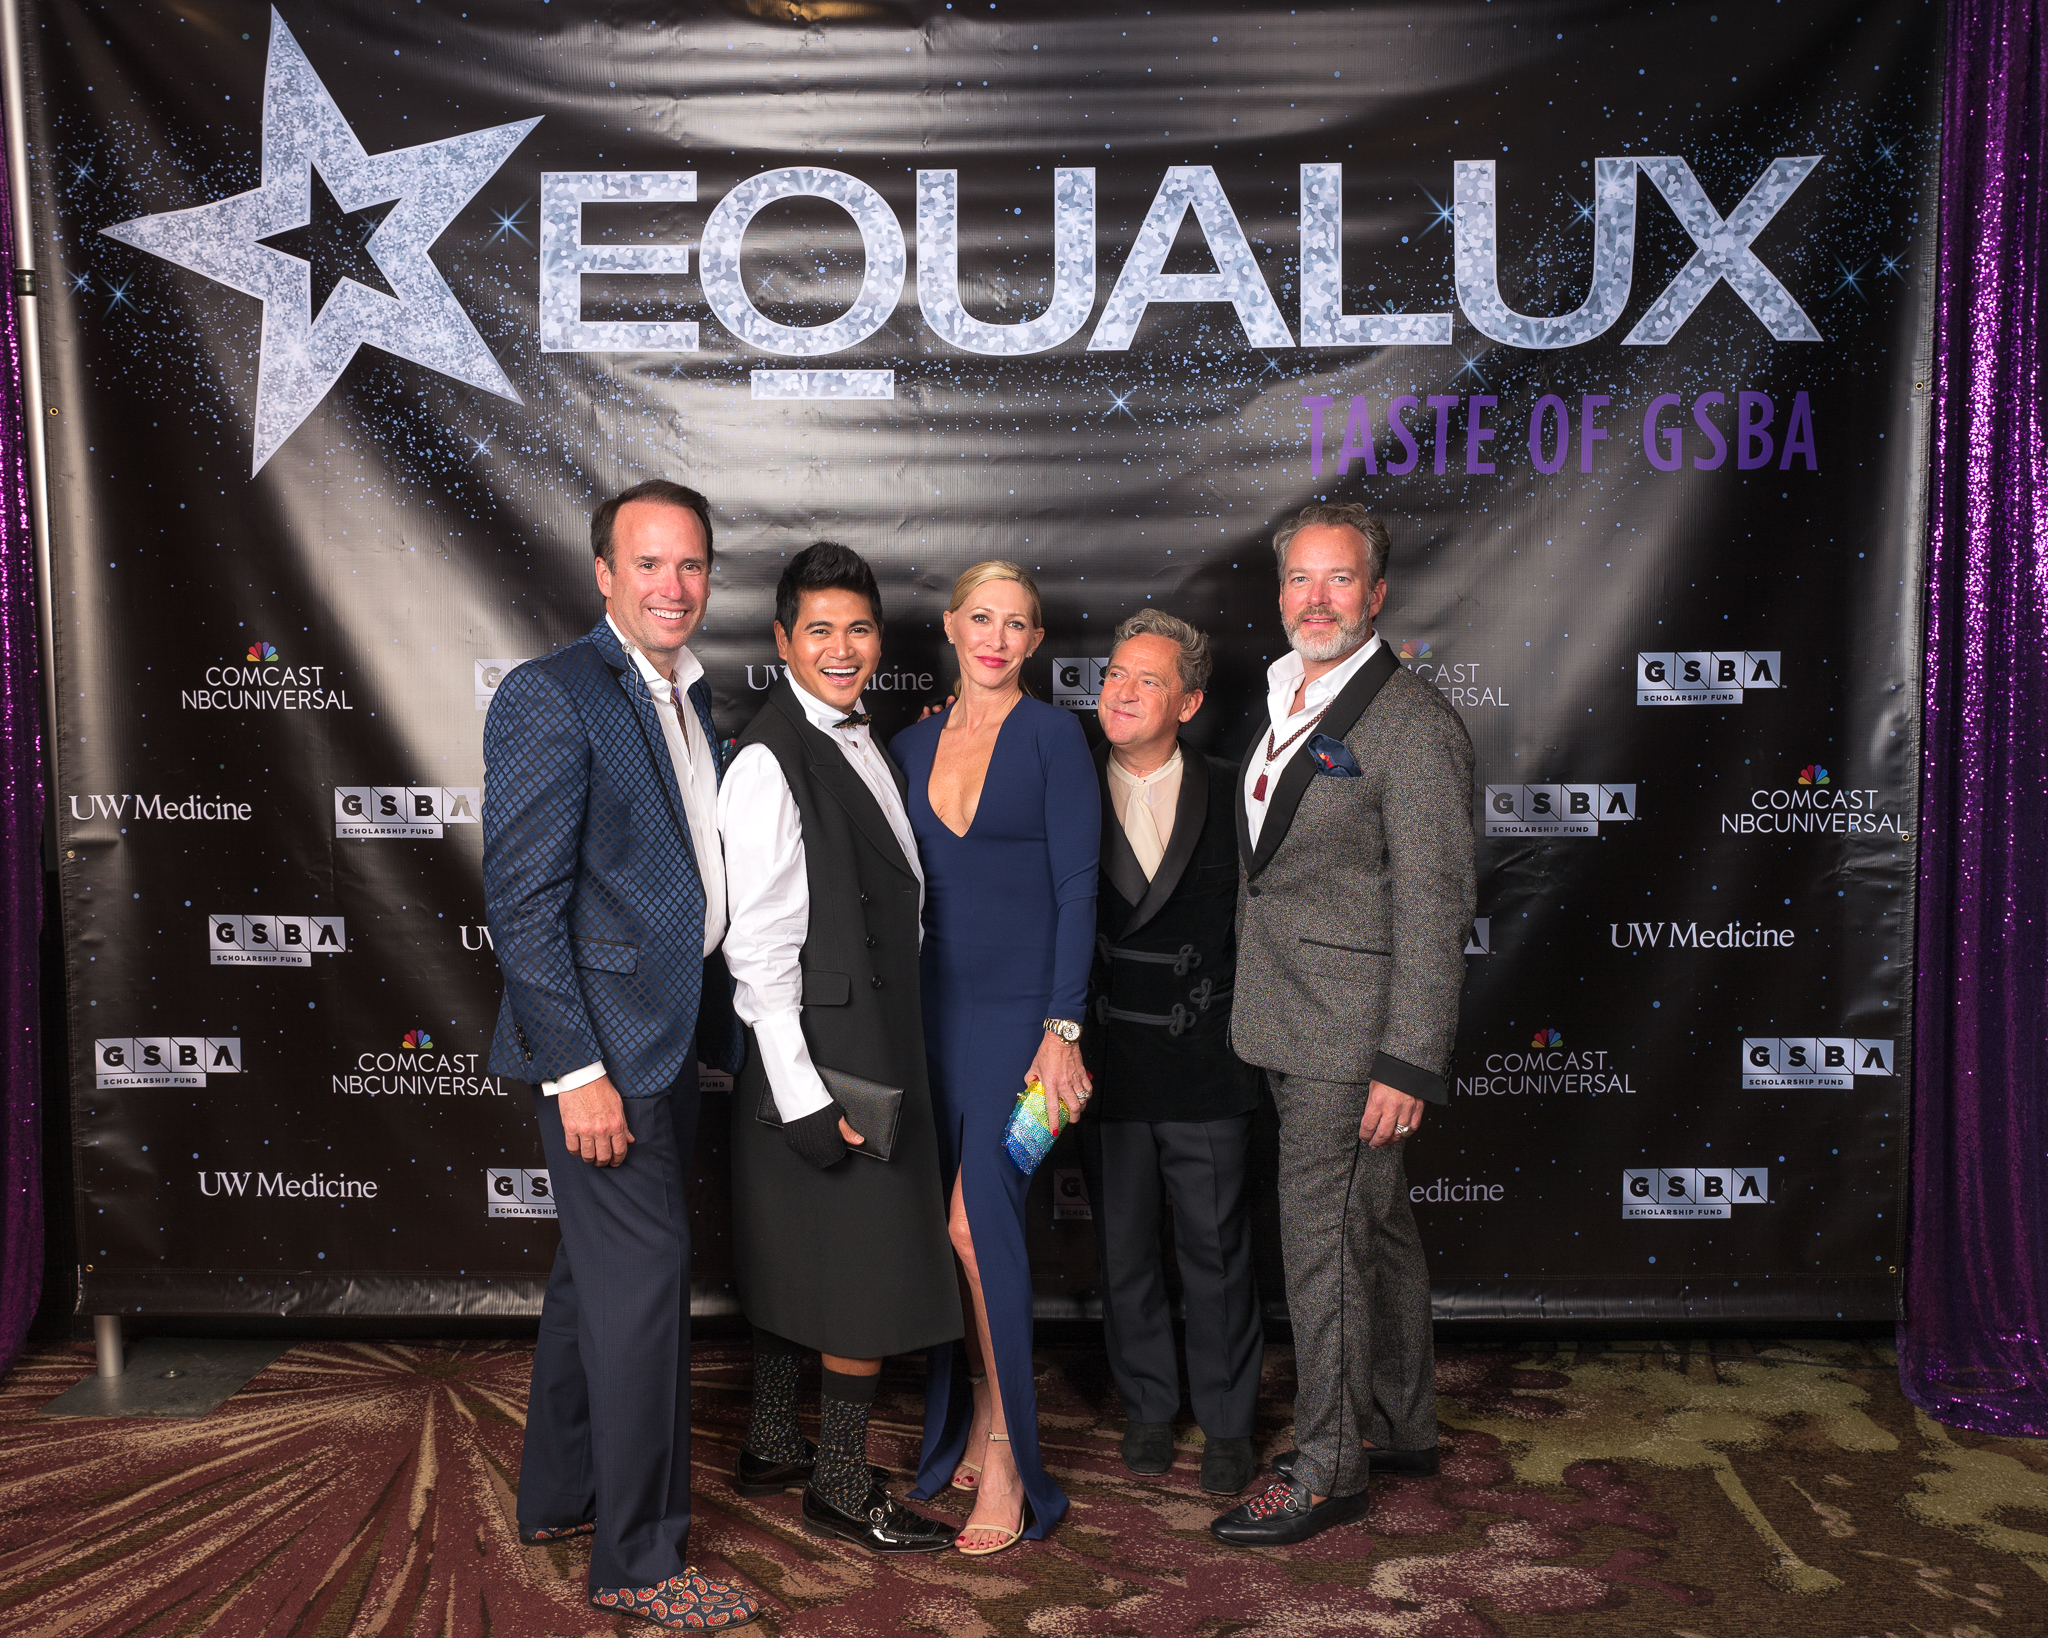 111718_GSBA EQUALUX at The Westin Seattle (Credit- Nate Gowdy)-191.jpg